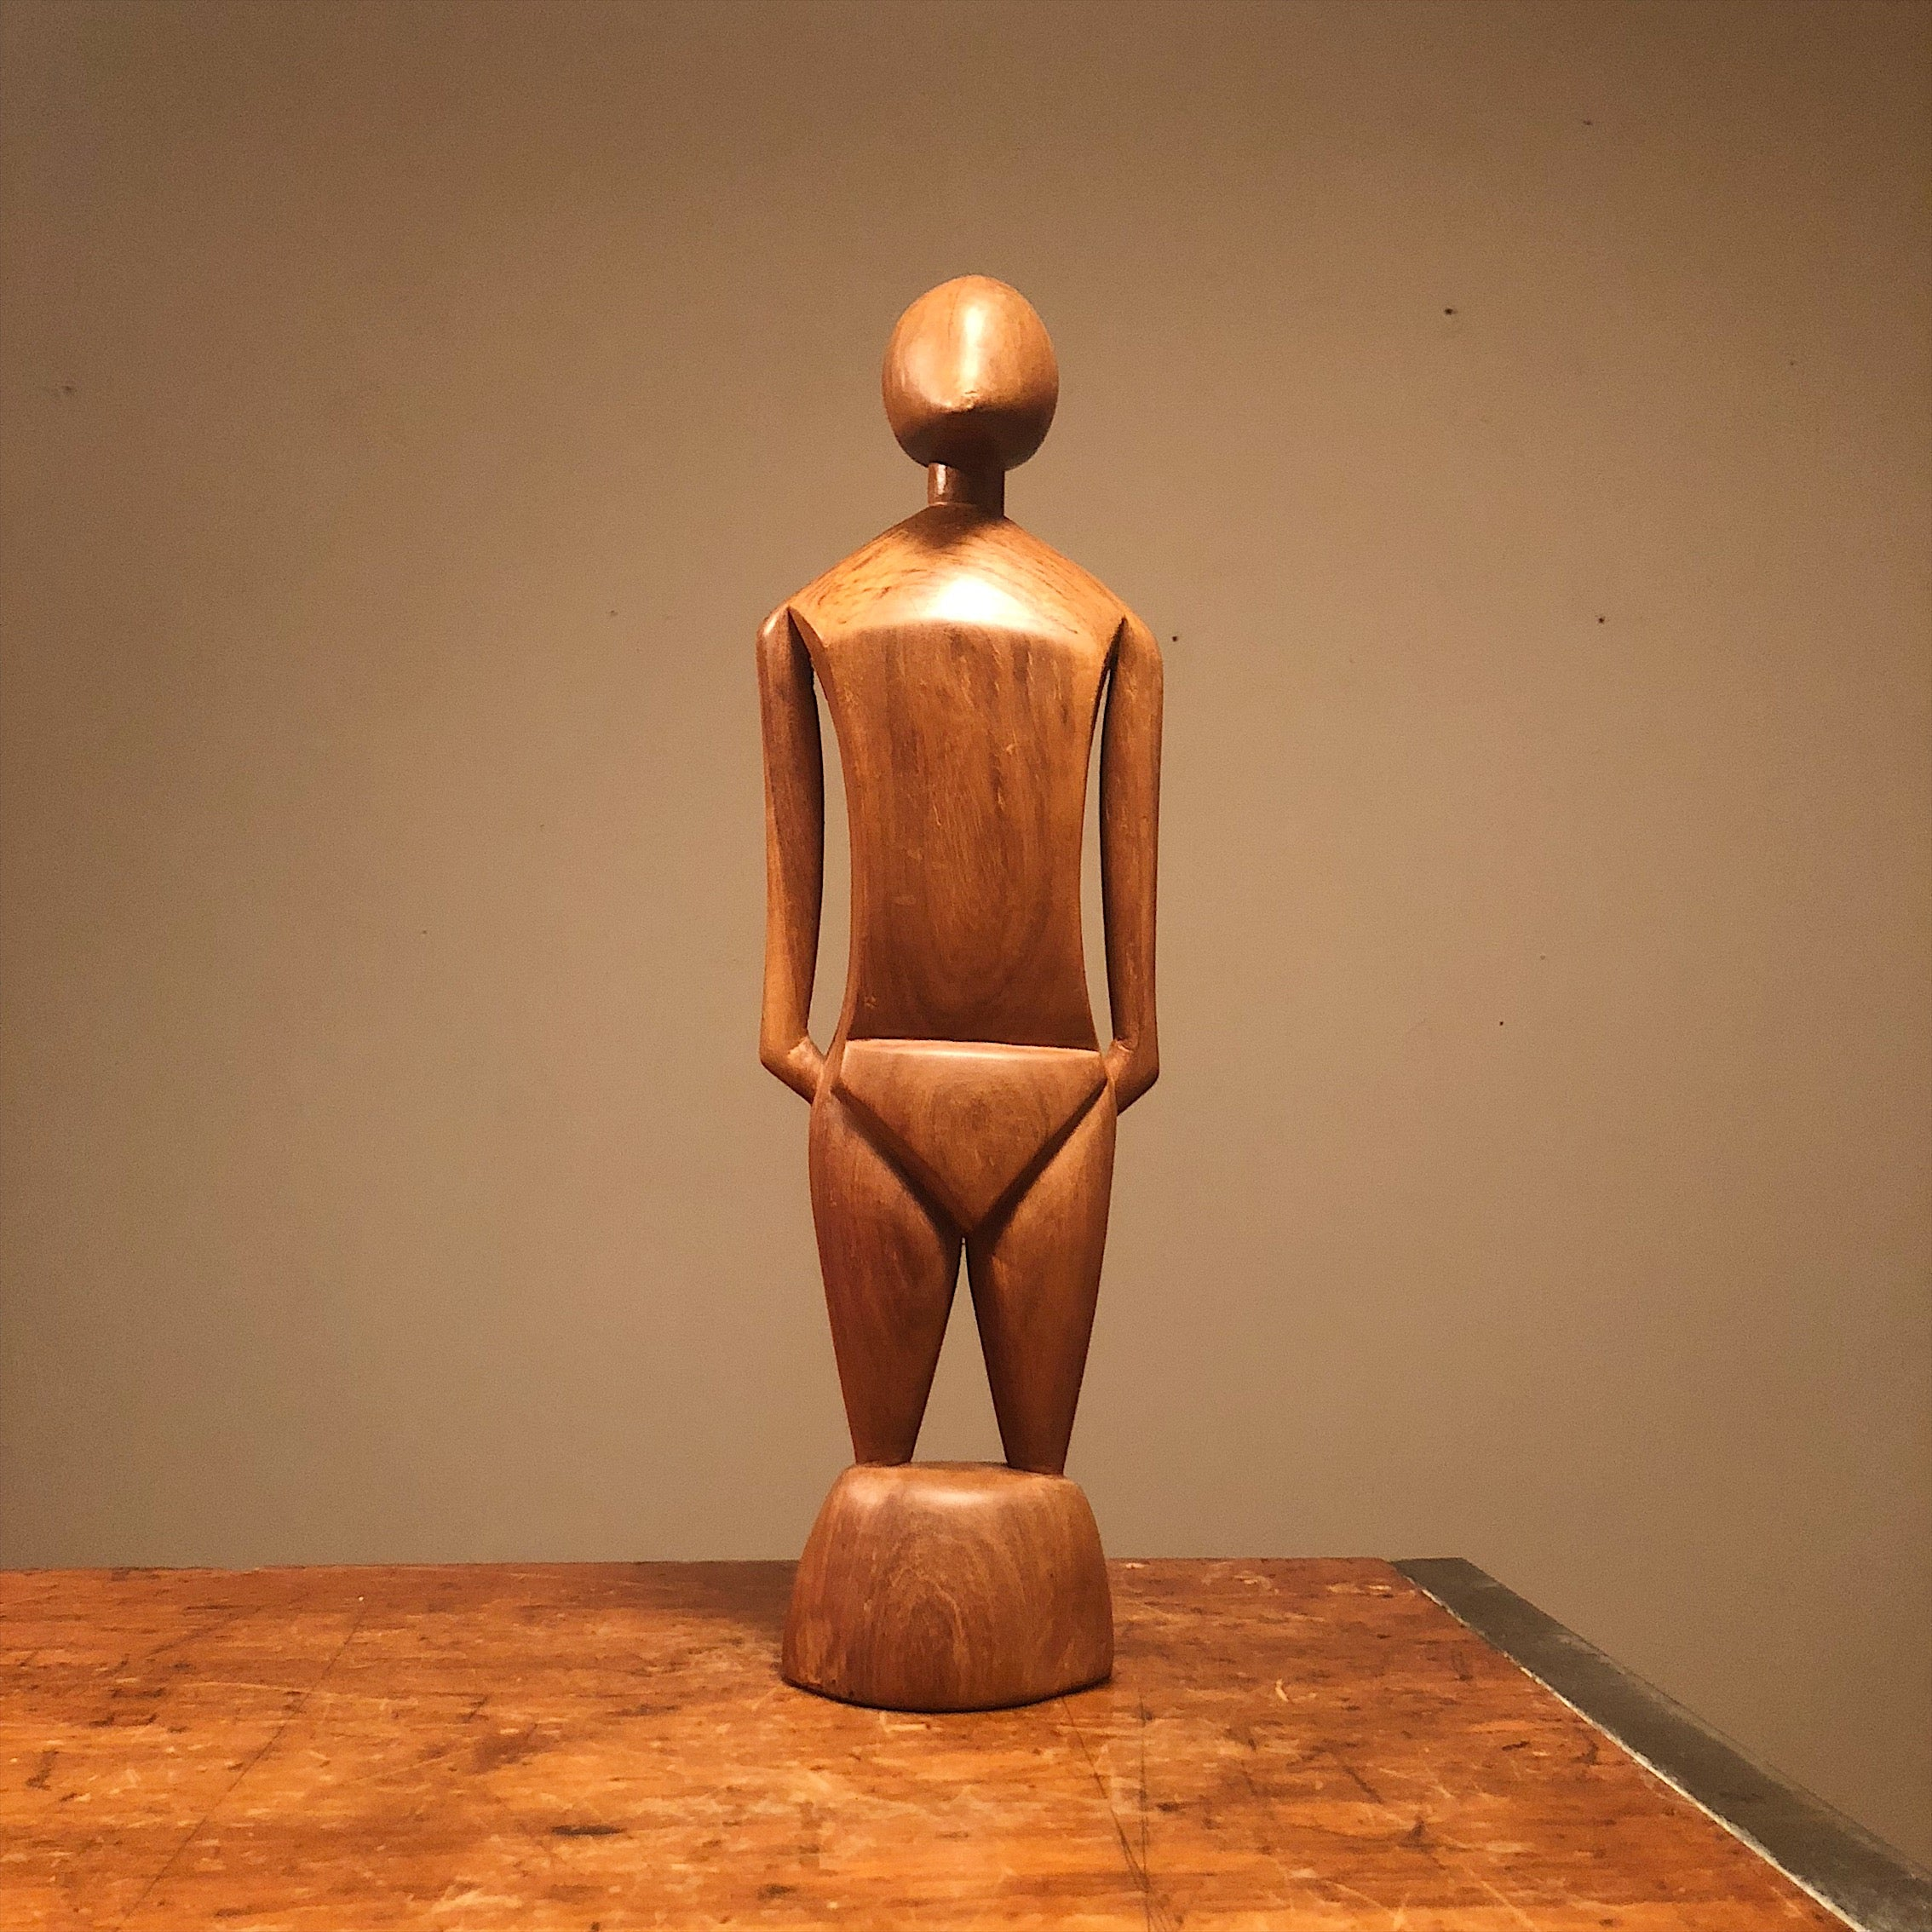 Unusual Mod Wood Sculpture of Human Form from 1950s